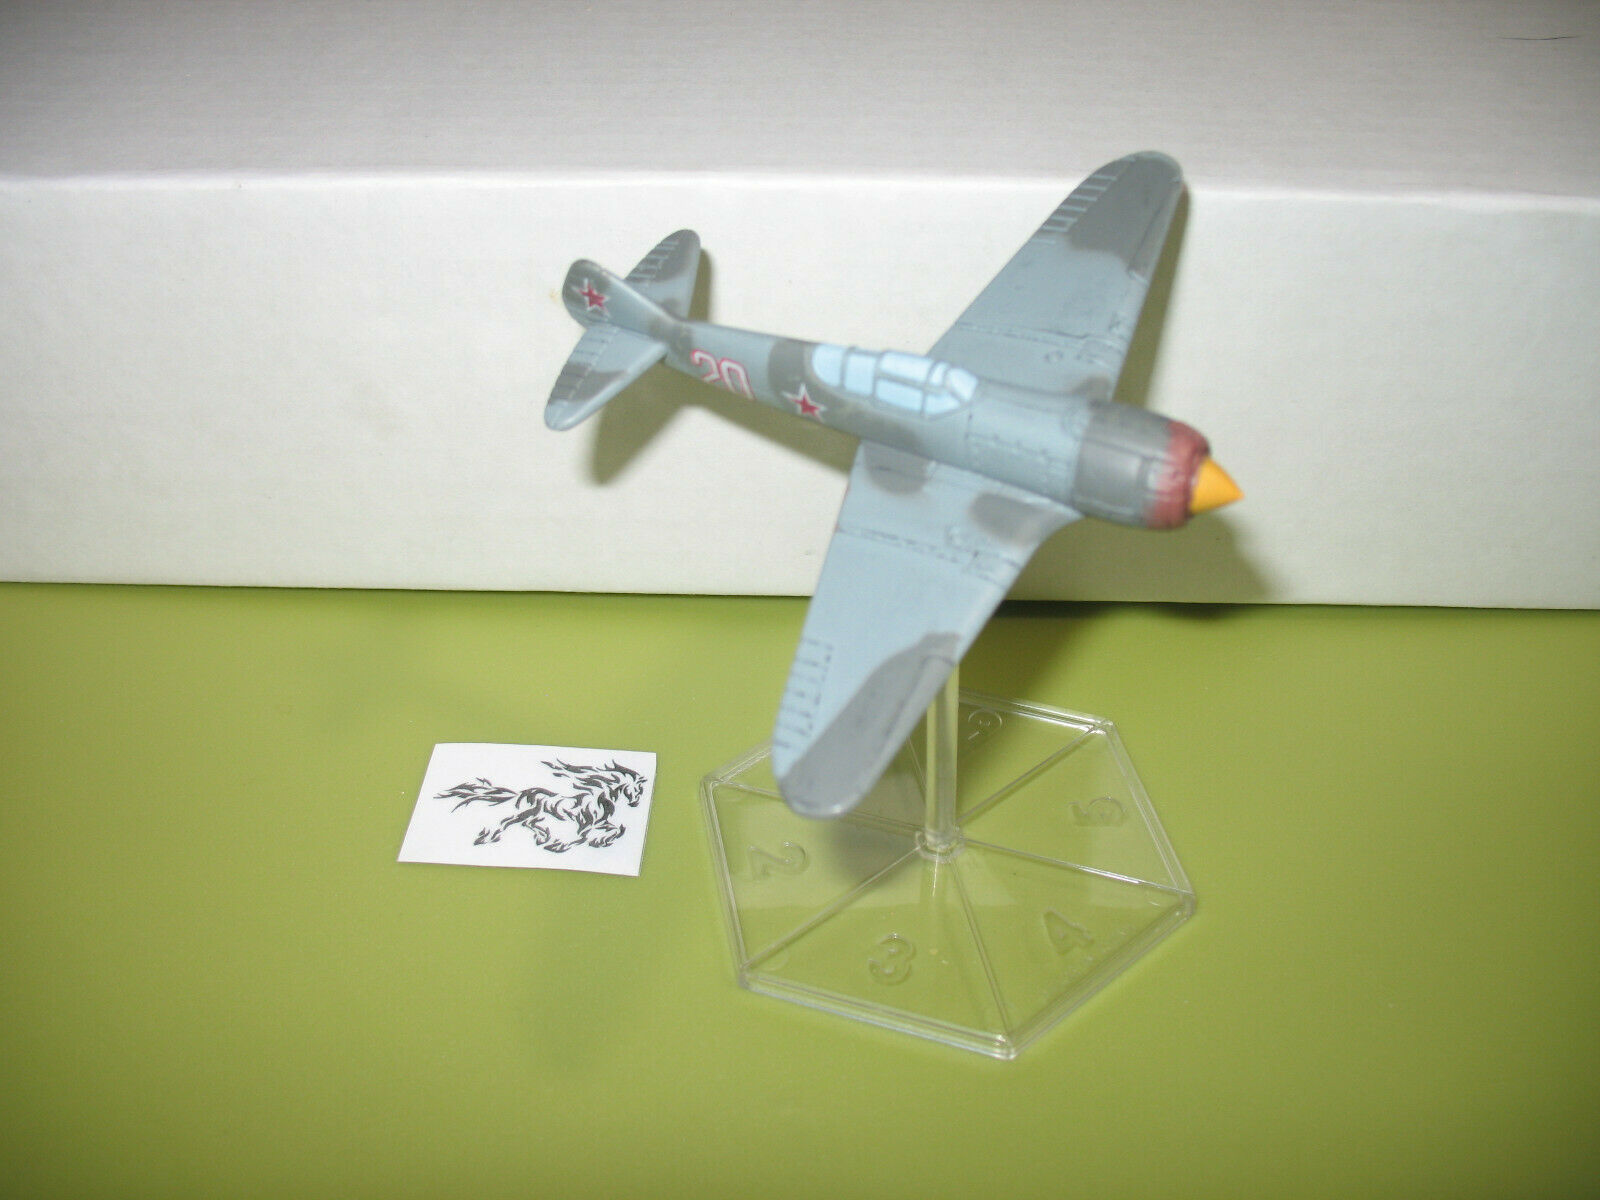 Axis & Allies Air Force - La-5FN Ace